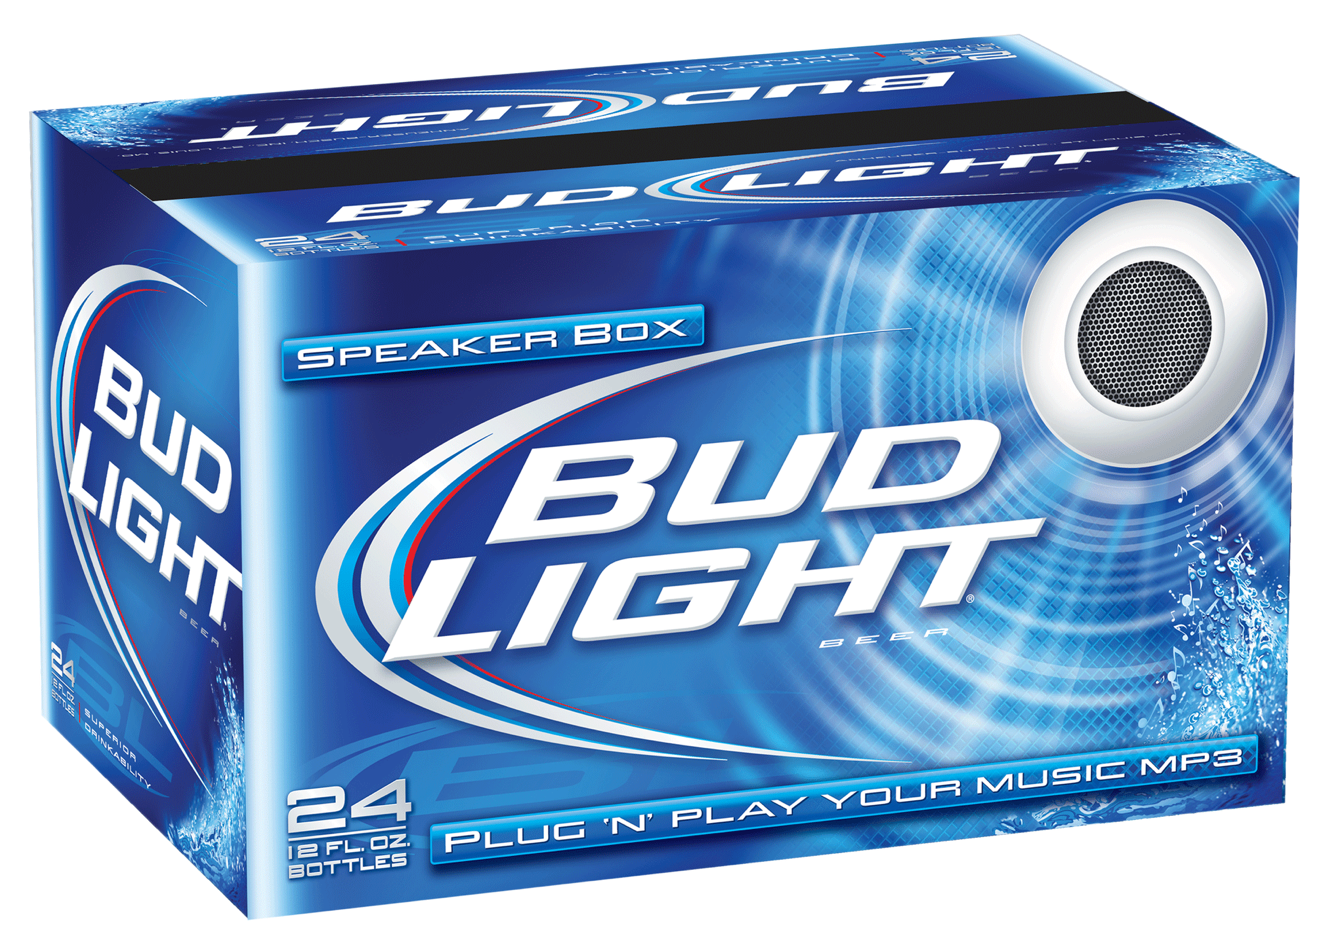 HOT OFF THE WIRE: The Bud Light Speaker Box - The Momentum